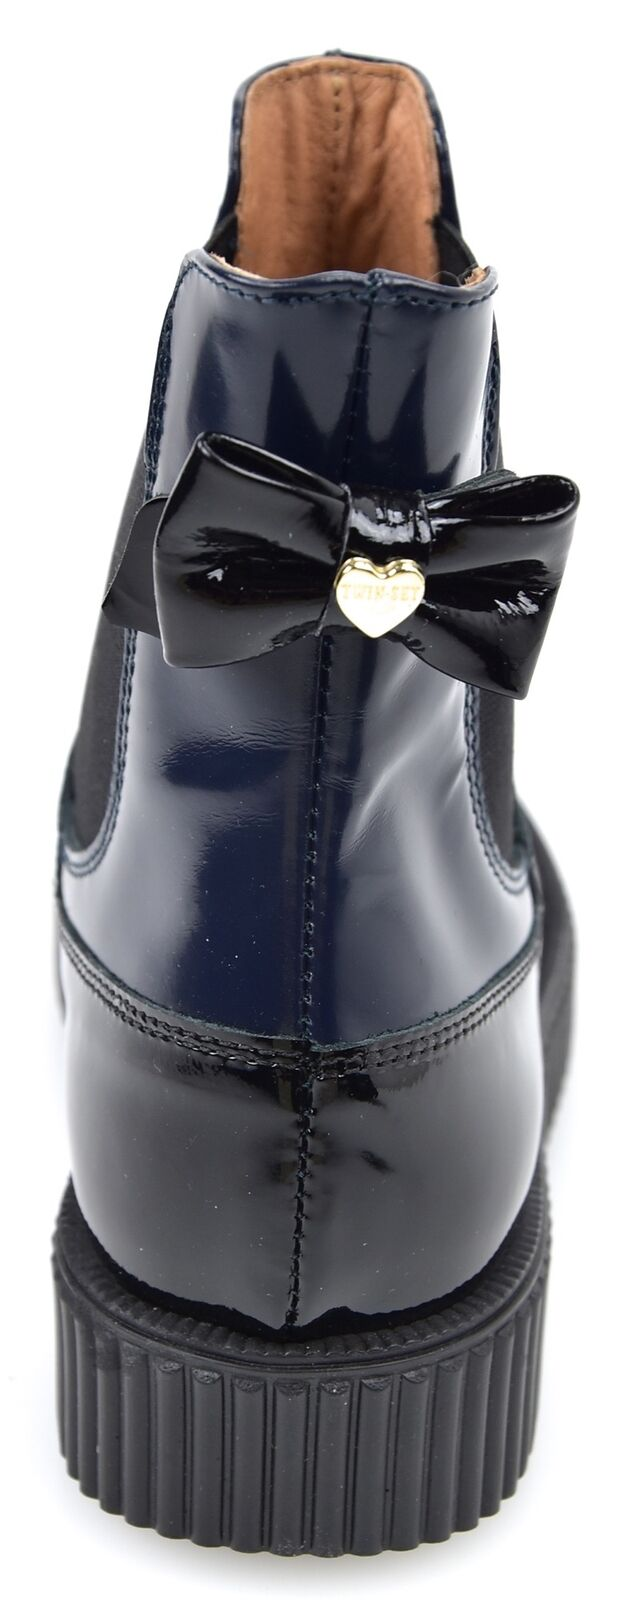 TWIN-SET WOMAN BEATLES ANKLE BOOTS BOOTIES BOOTIES BOOTIES WINTER SHINY LEATHER CODE HA68A7 b590ea